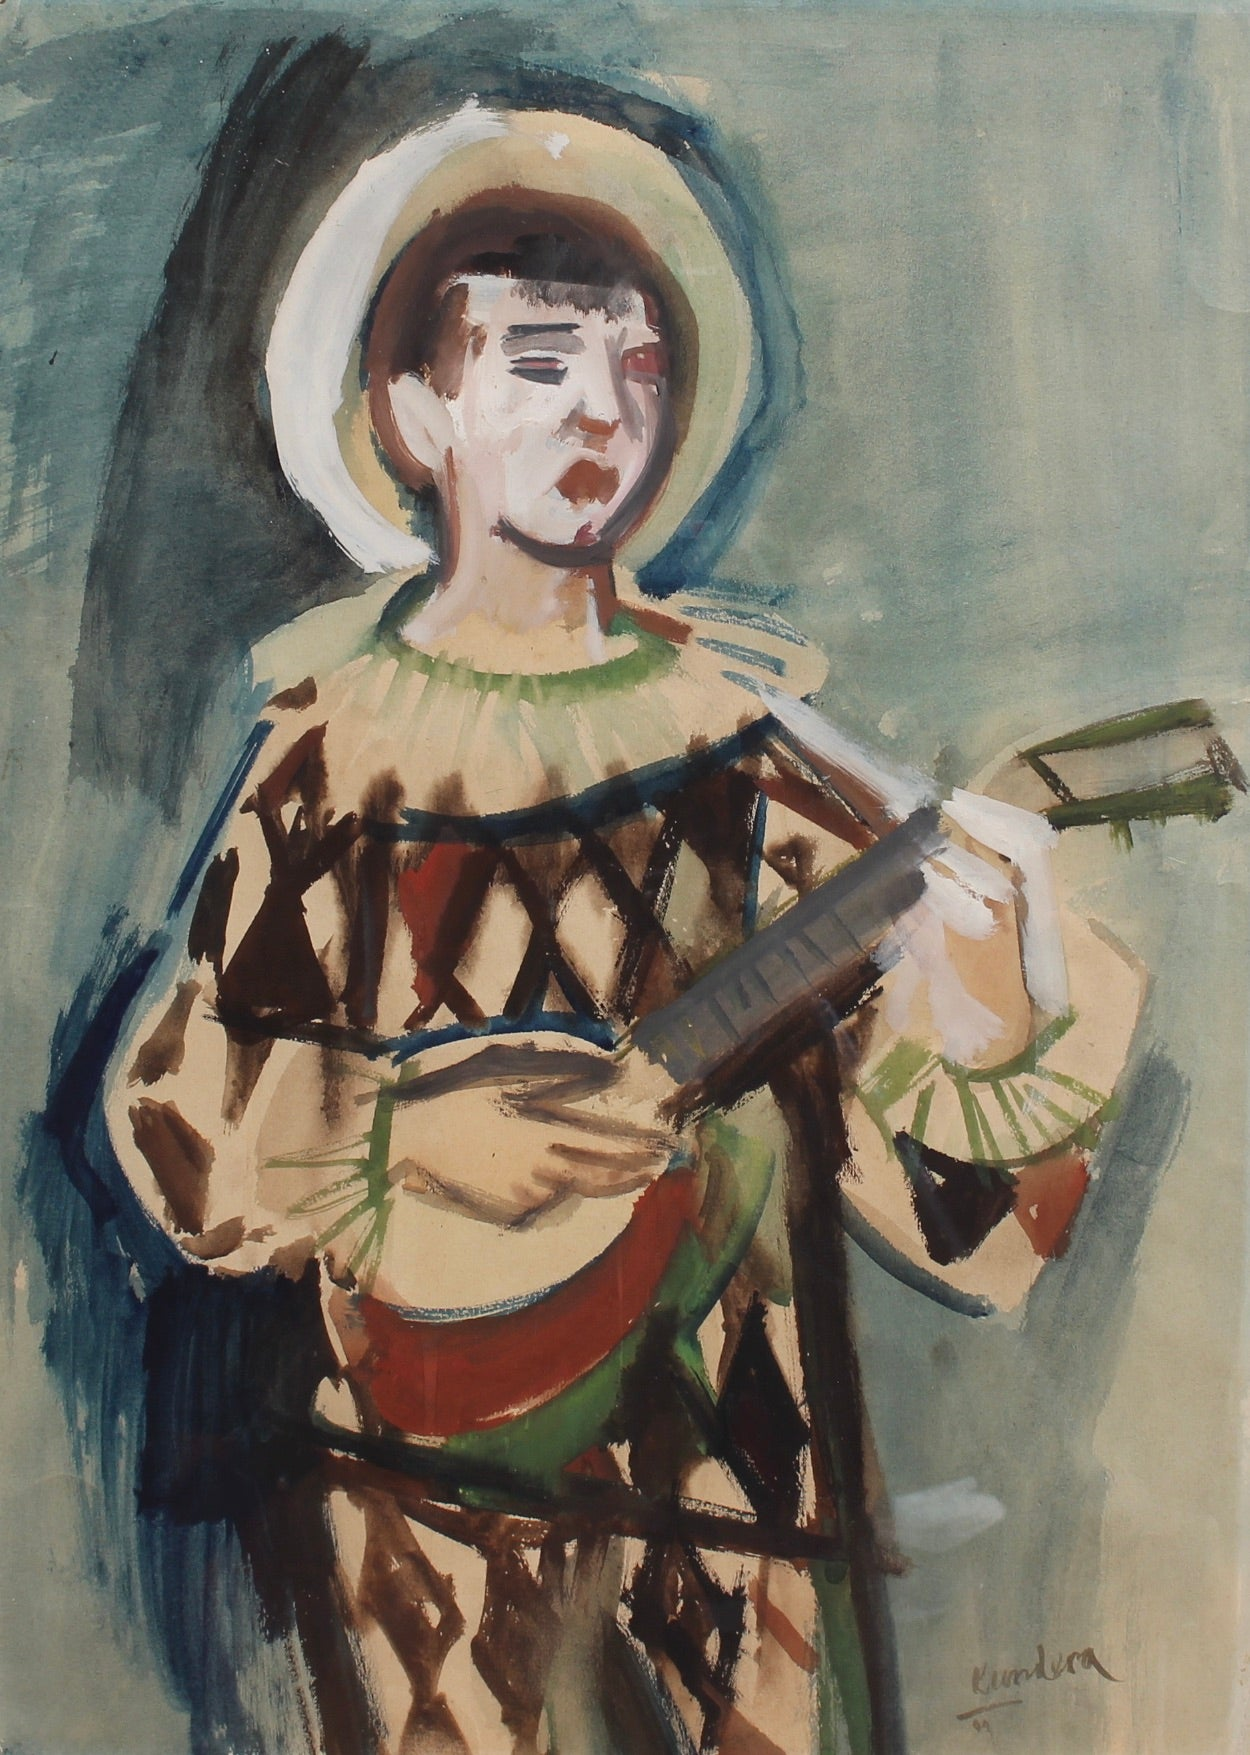 'The Harlequin' by Rudolf Kundera (1944)